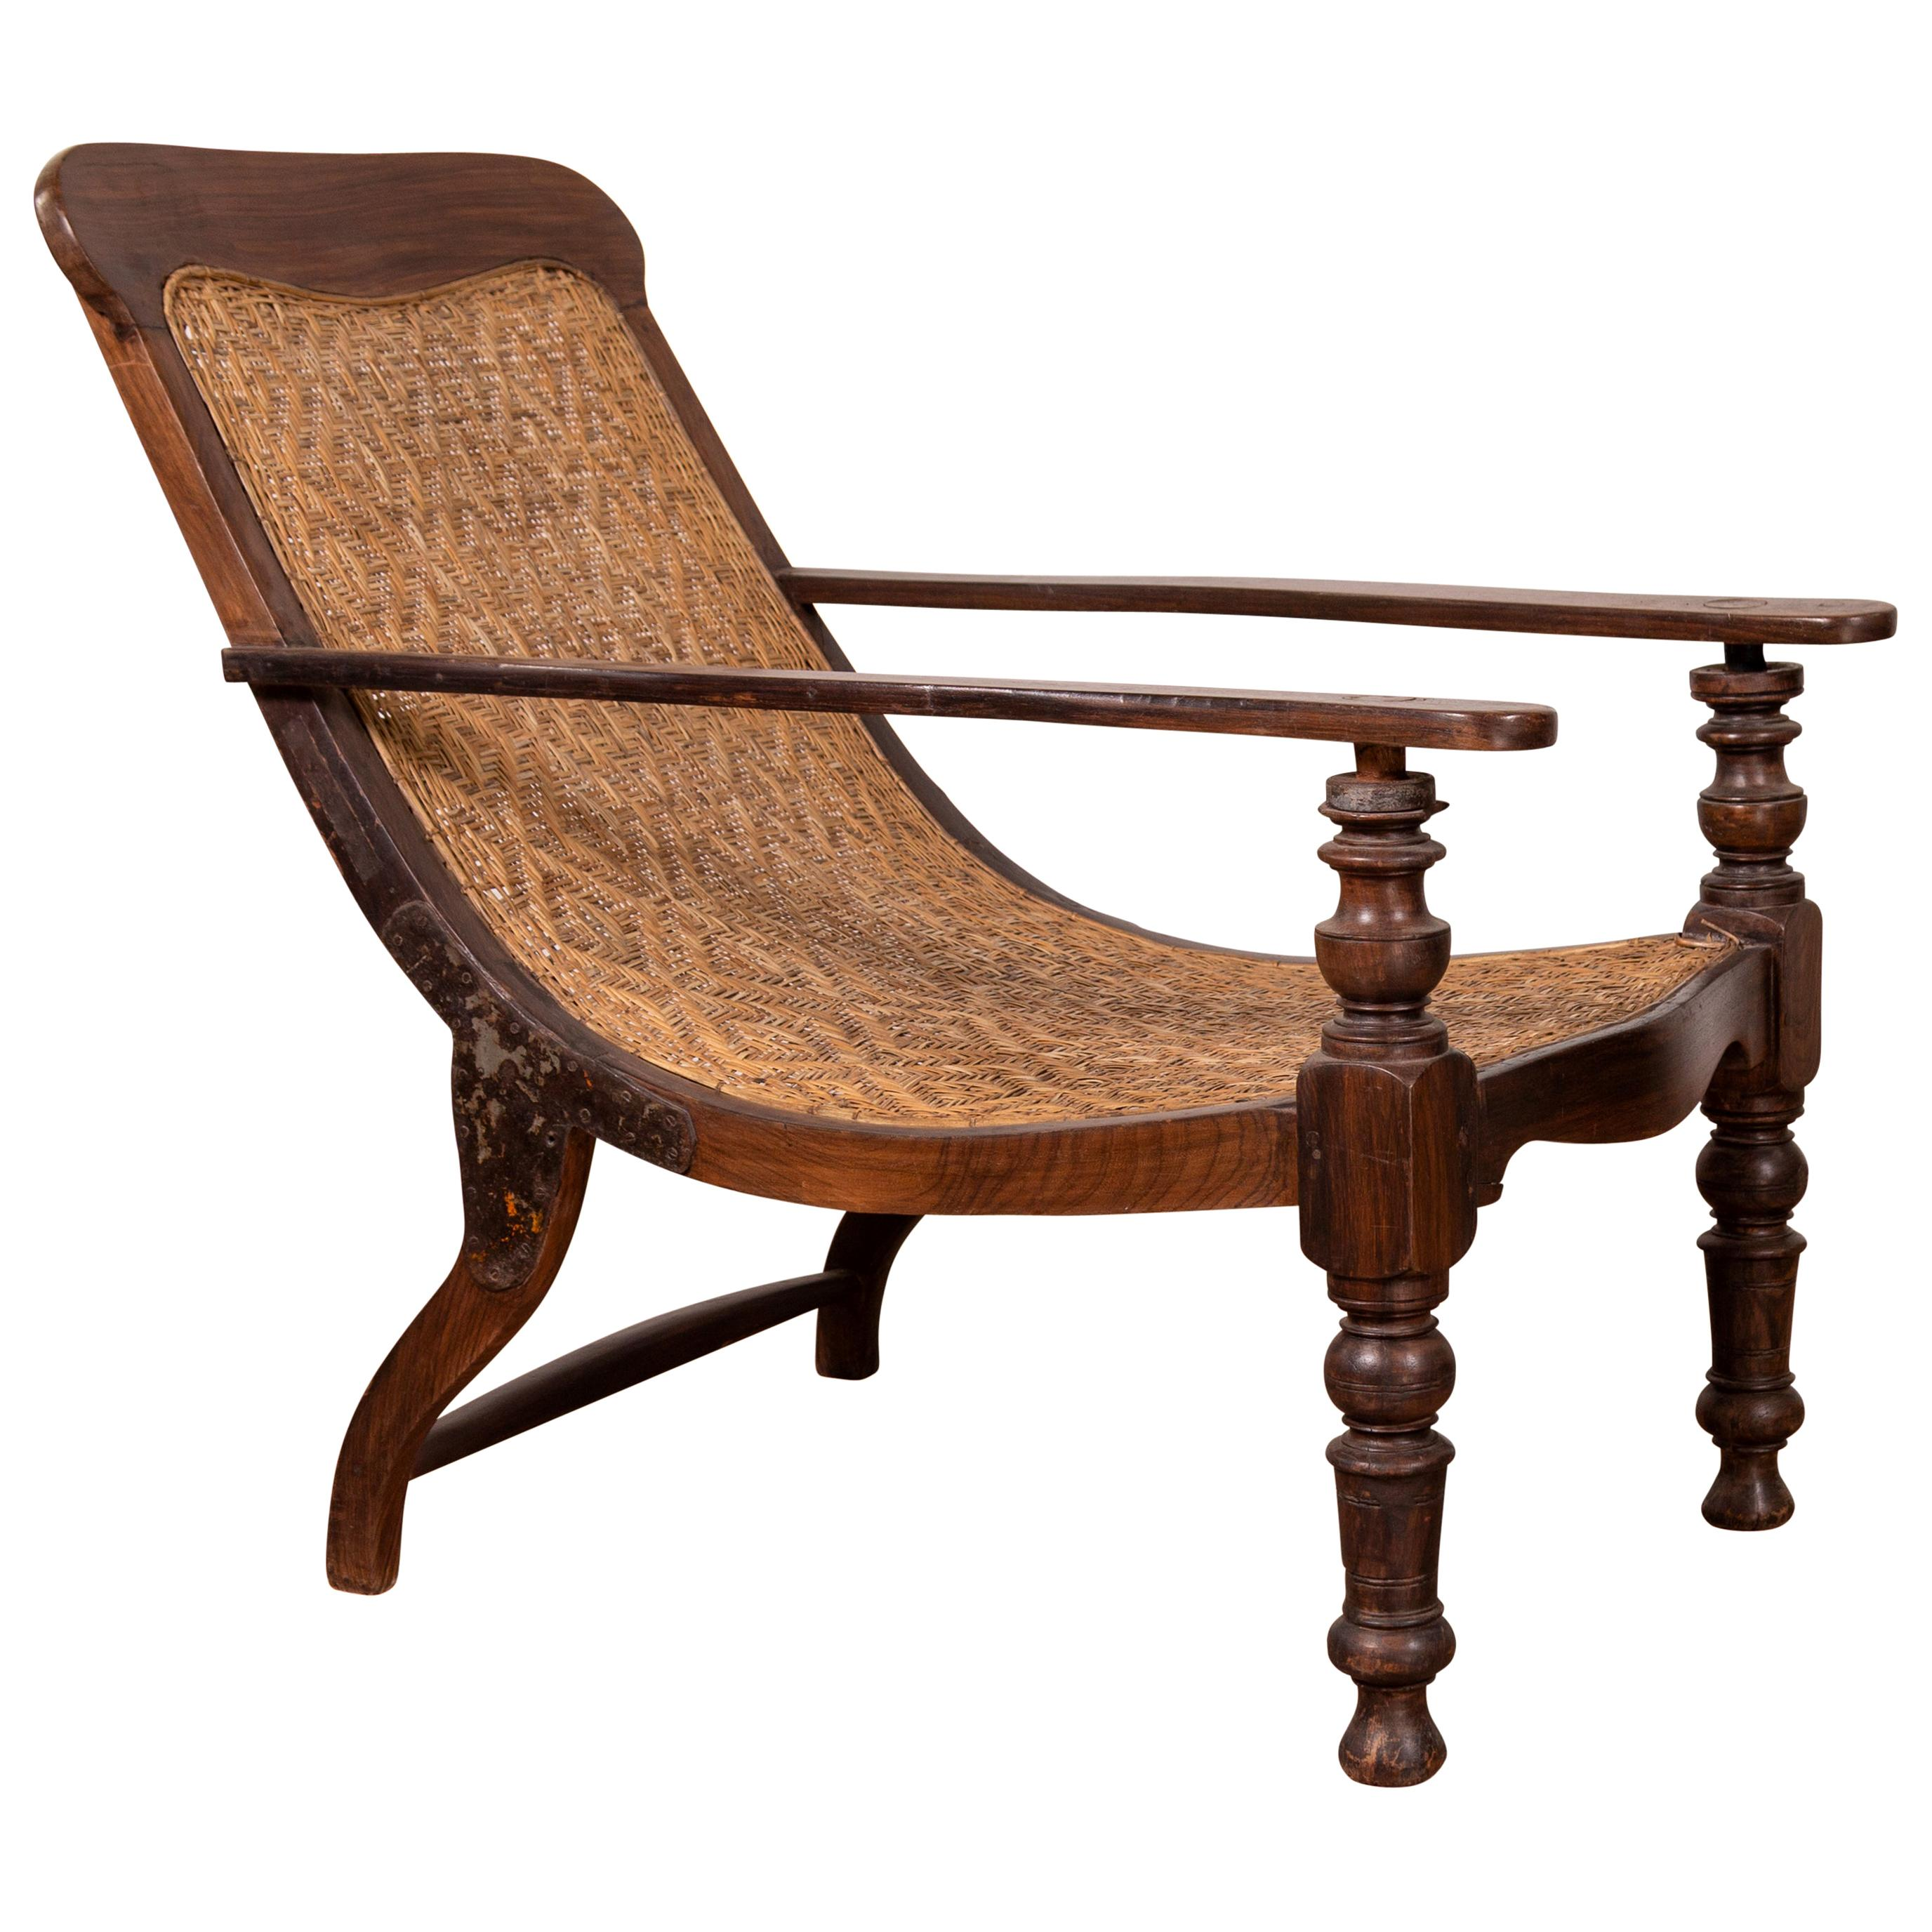 Incredible Antique Dutch Colonial Plantation Lounge Chair With Woven Rattan Seat And Back Gmtry Best Dining Table And Chair Ideas Images Gmtryco